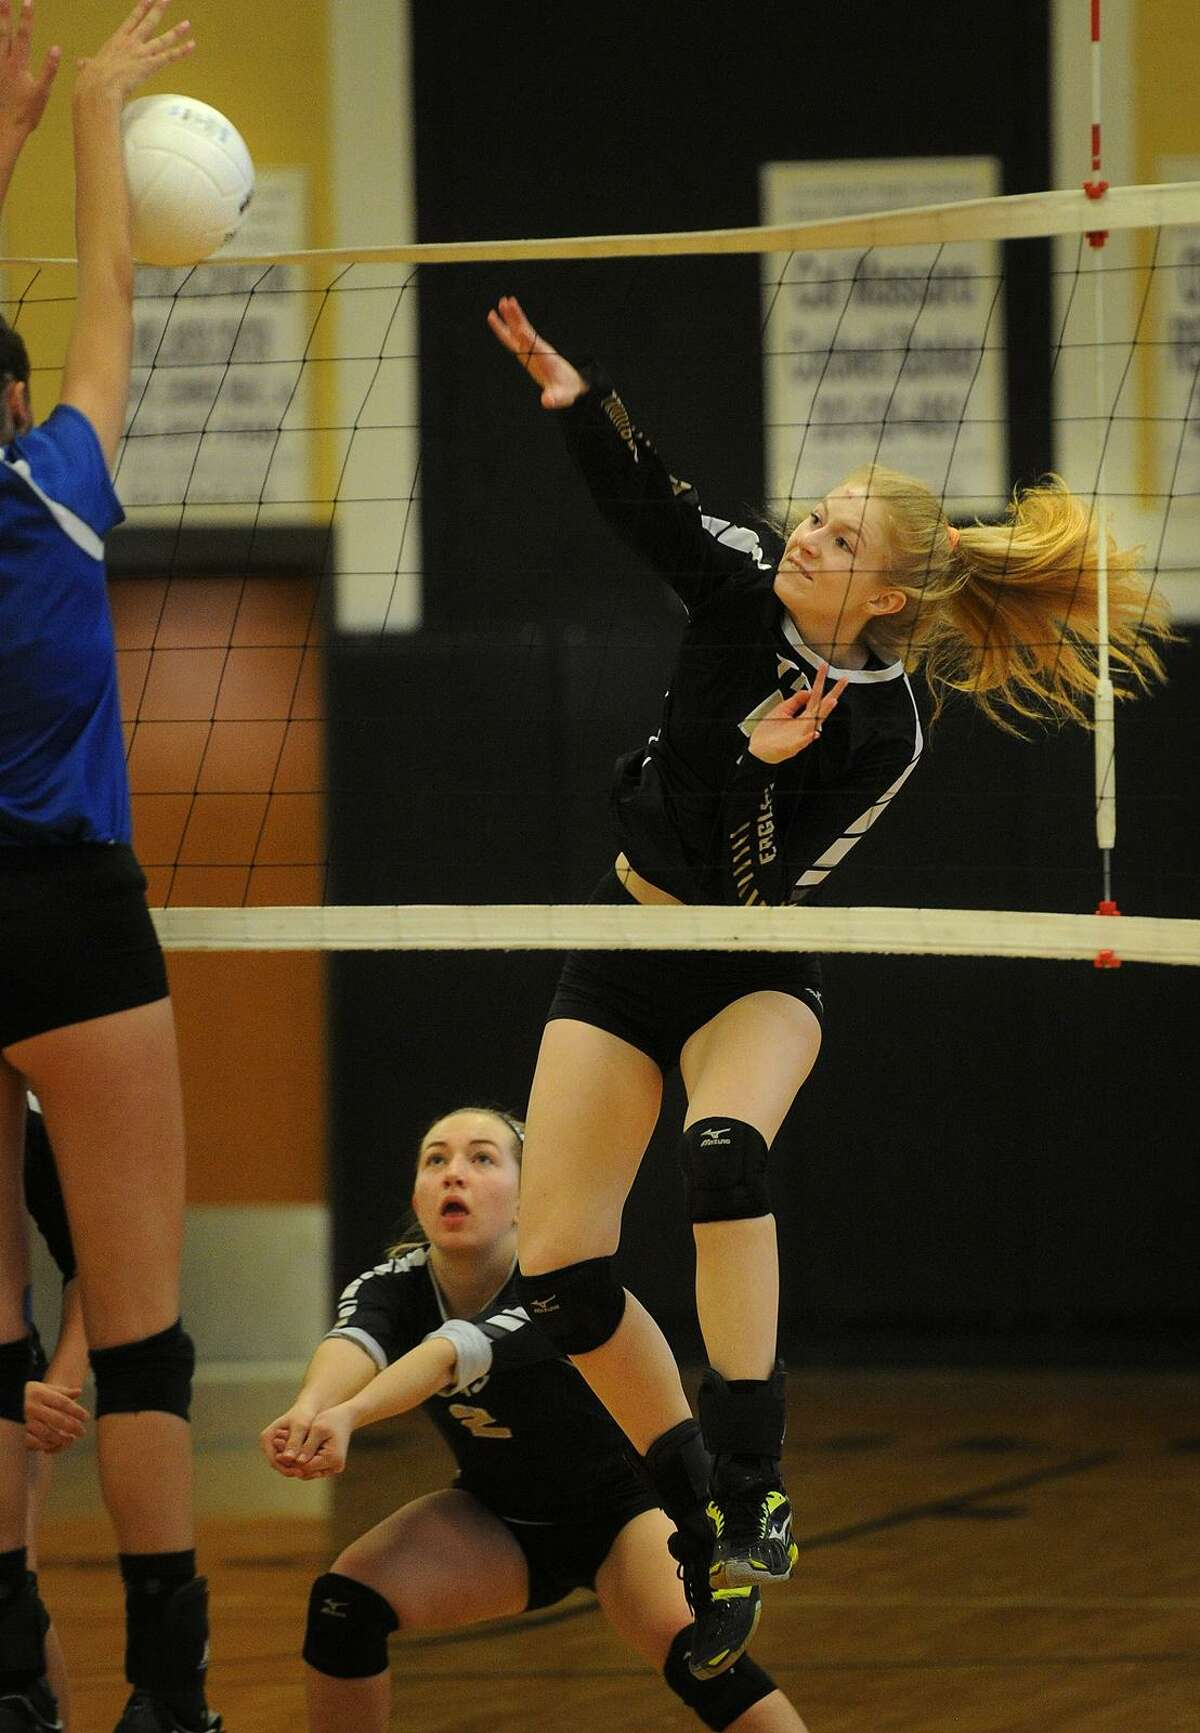 Trumbull's Liv Borski, right, spikes the ball off the block of Darien's Thea Bolton in the Eagles' 3-0 victory over the Blue Wave at Trumbull High School in Trumbull, Conn. on Monday, November 7, 2016.